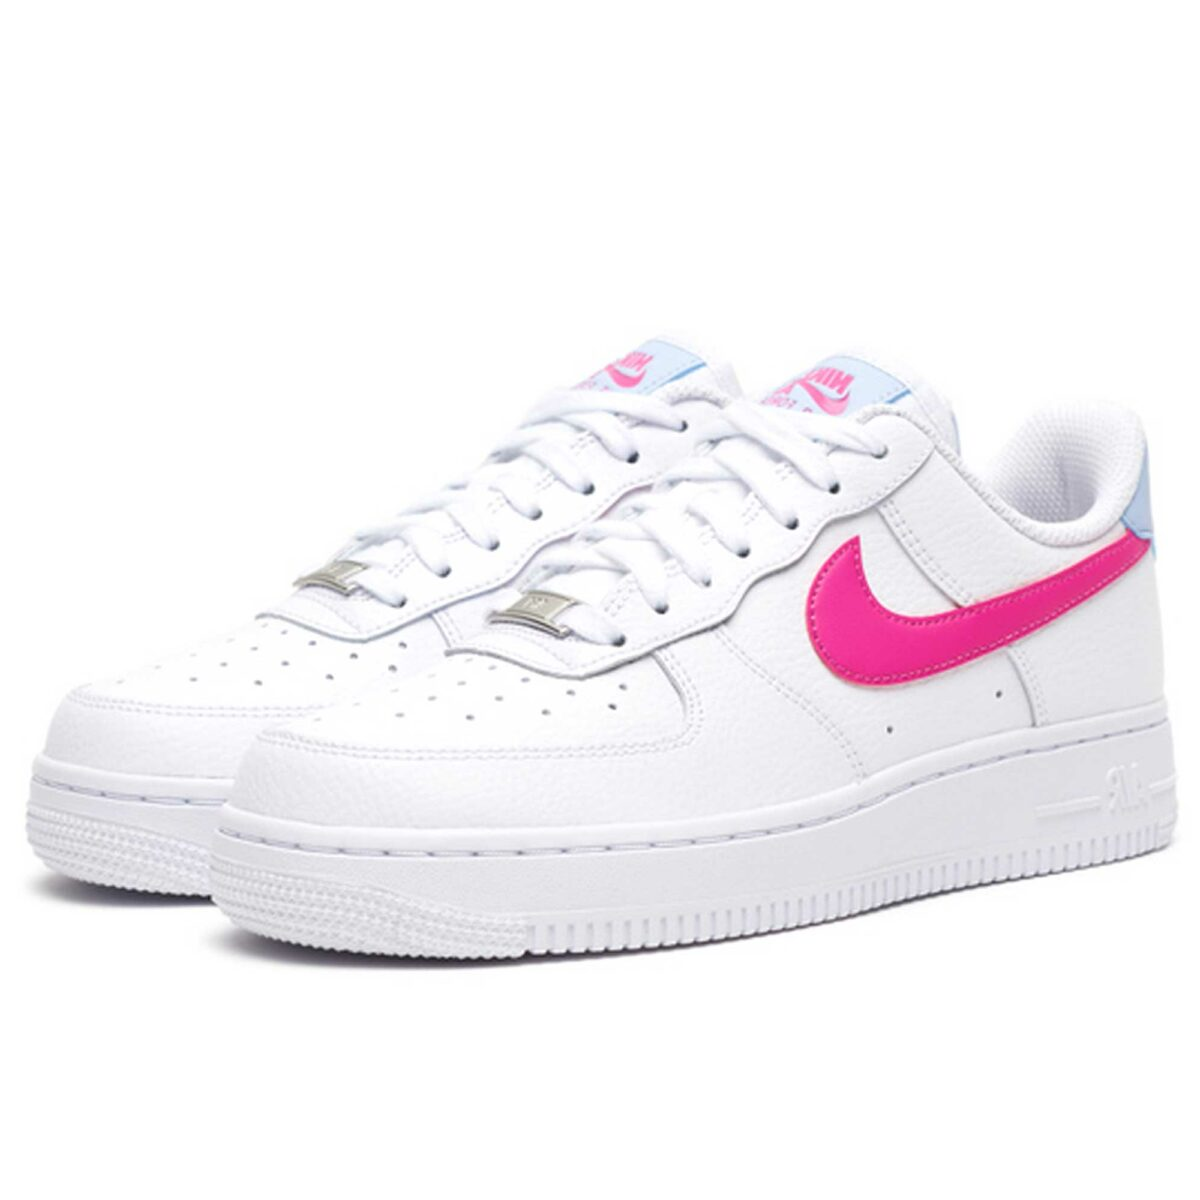 nike air force 1 07 white fire pink CT4328_101 купить